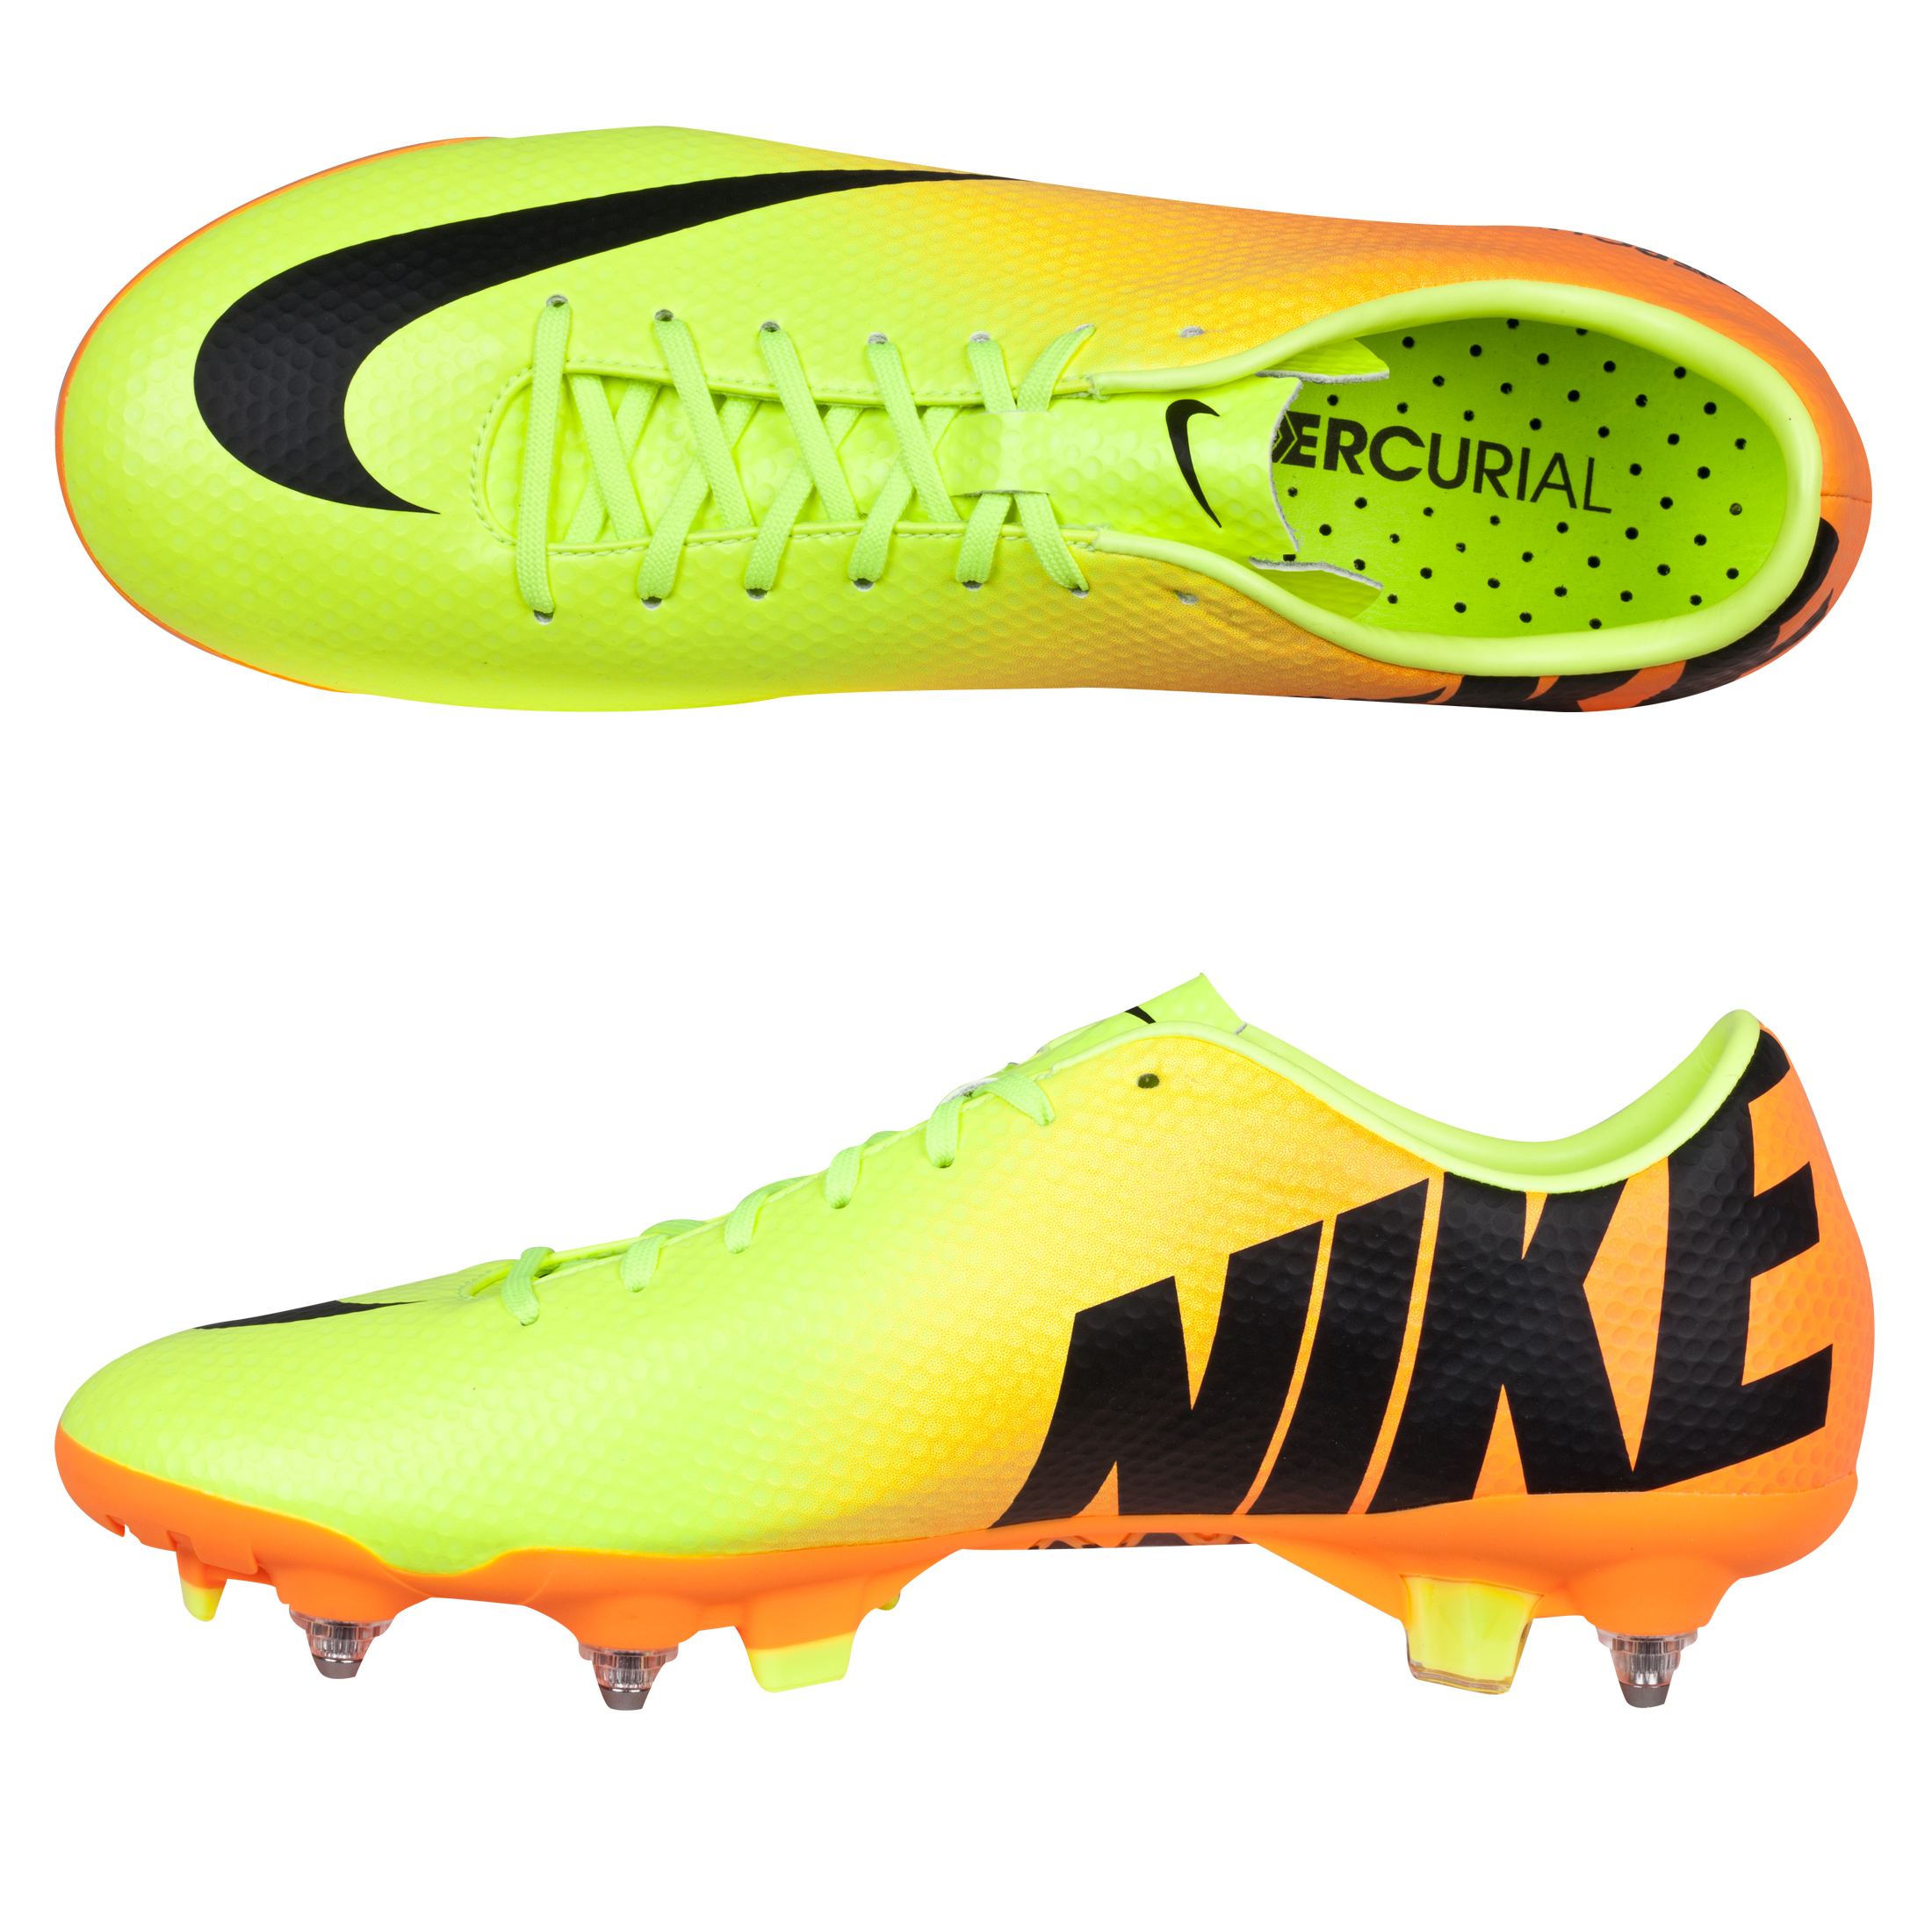 Nike Mercurial Veloce Soft Ground Pro Football Boots Yellow